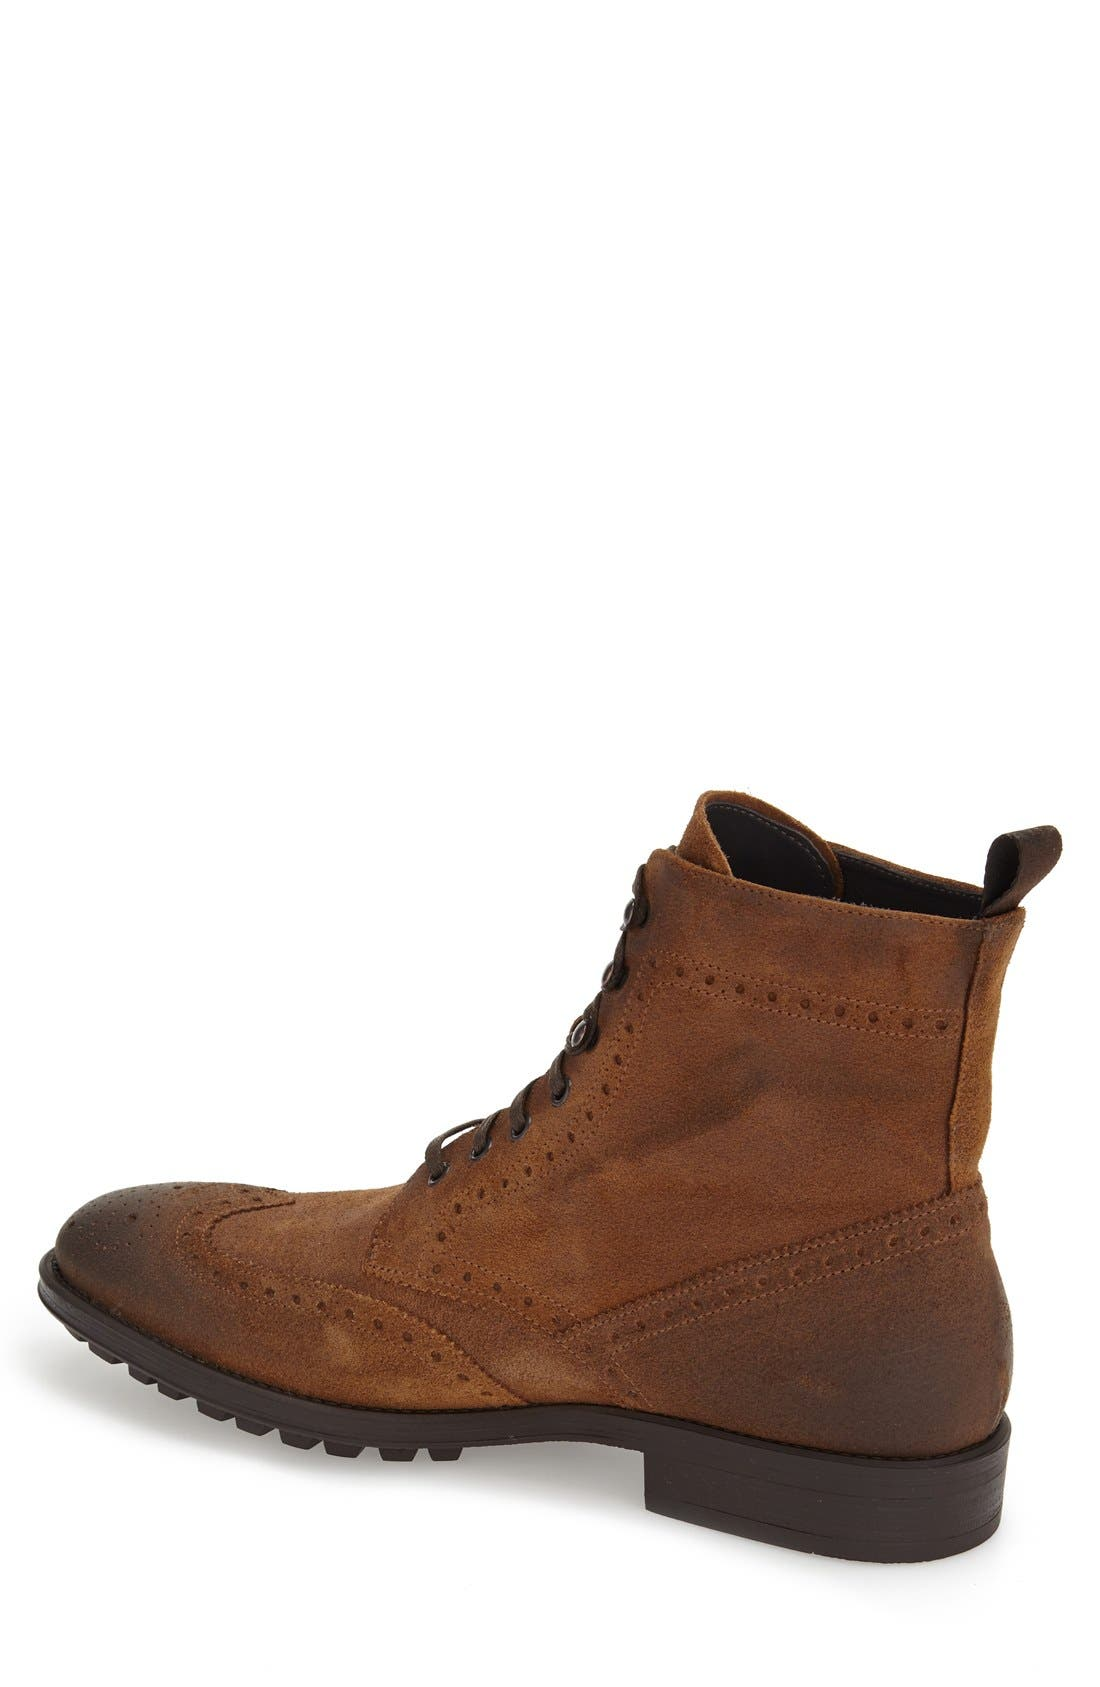 TO BOOT NEW YORK, 'Braeden Mid' Wingtip Boot, Alternate thumbnail 4, color, 231